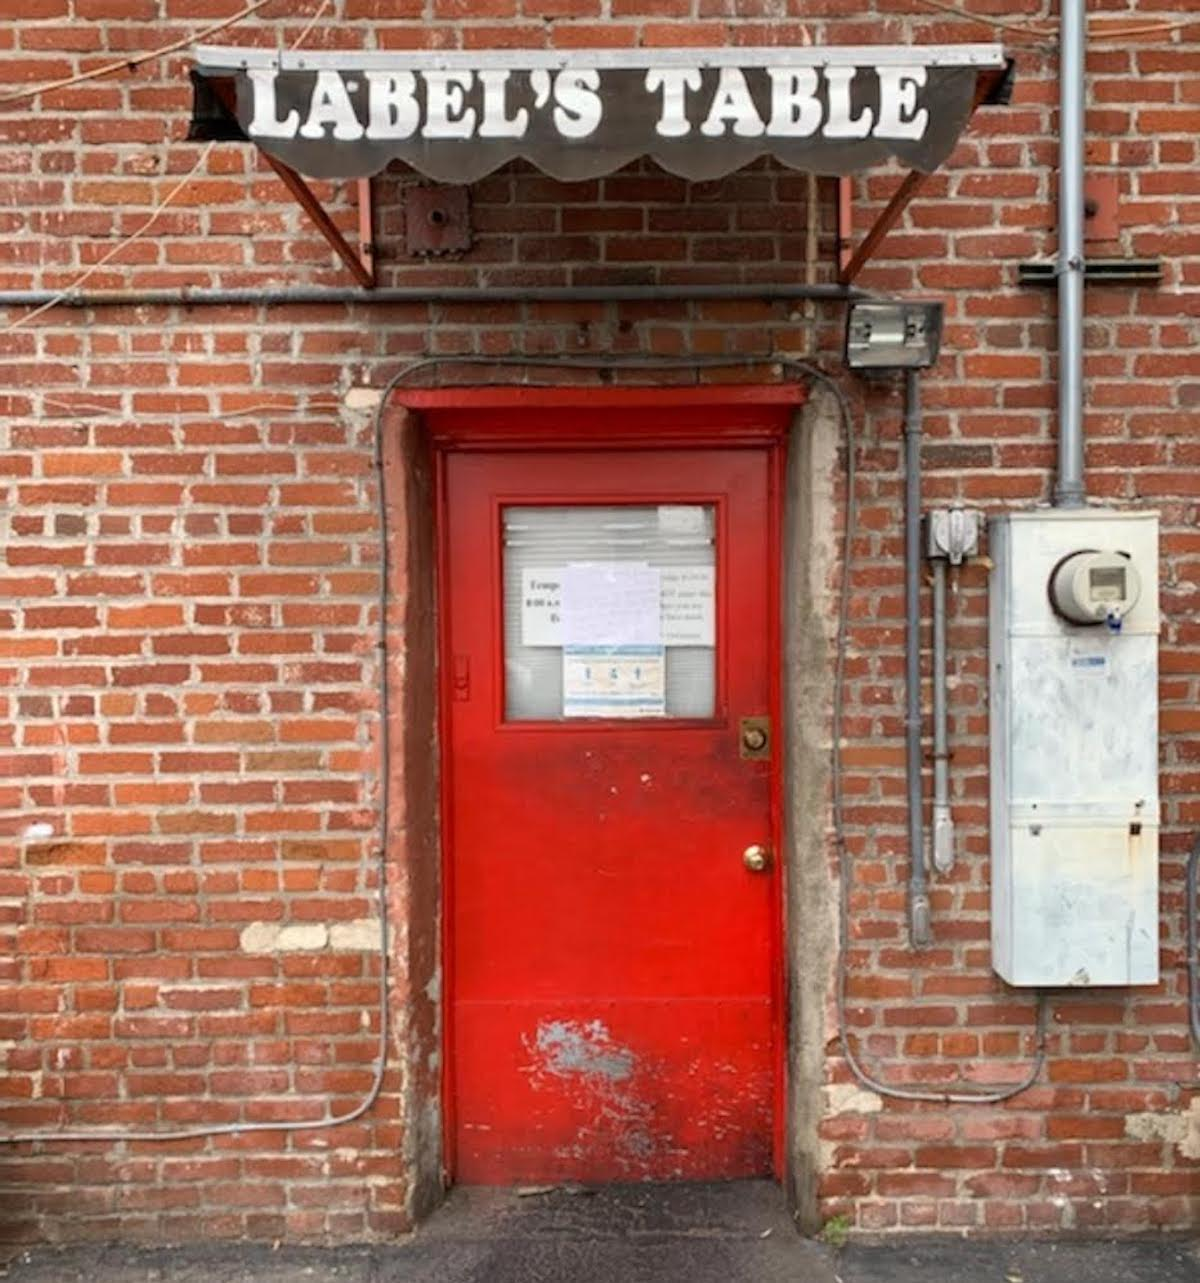 L.A. Loses Iconic Jewish Deli as Label's Table Abruptly Shutters - Photo Featured